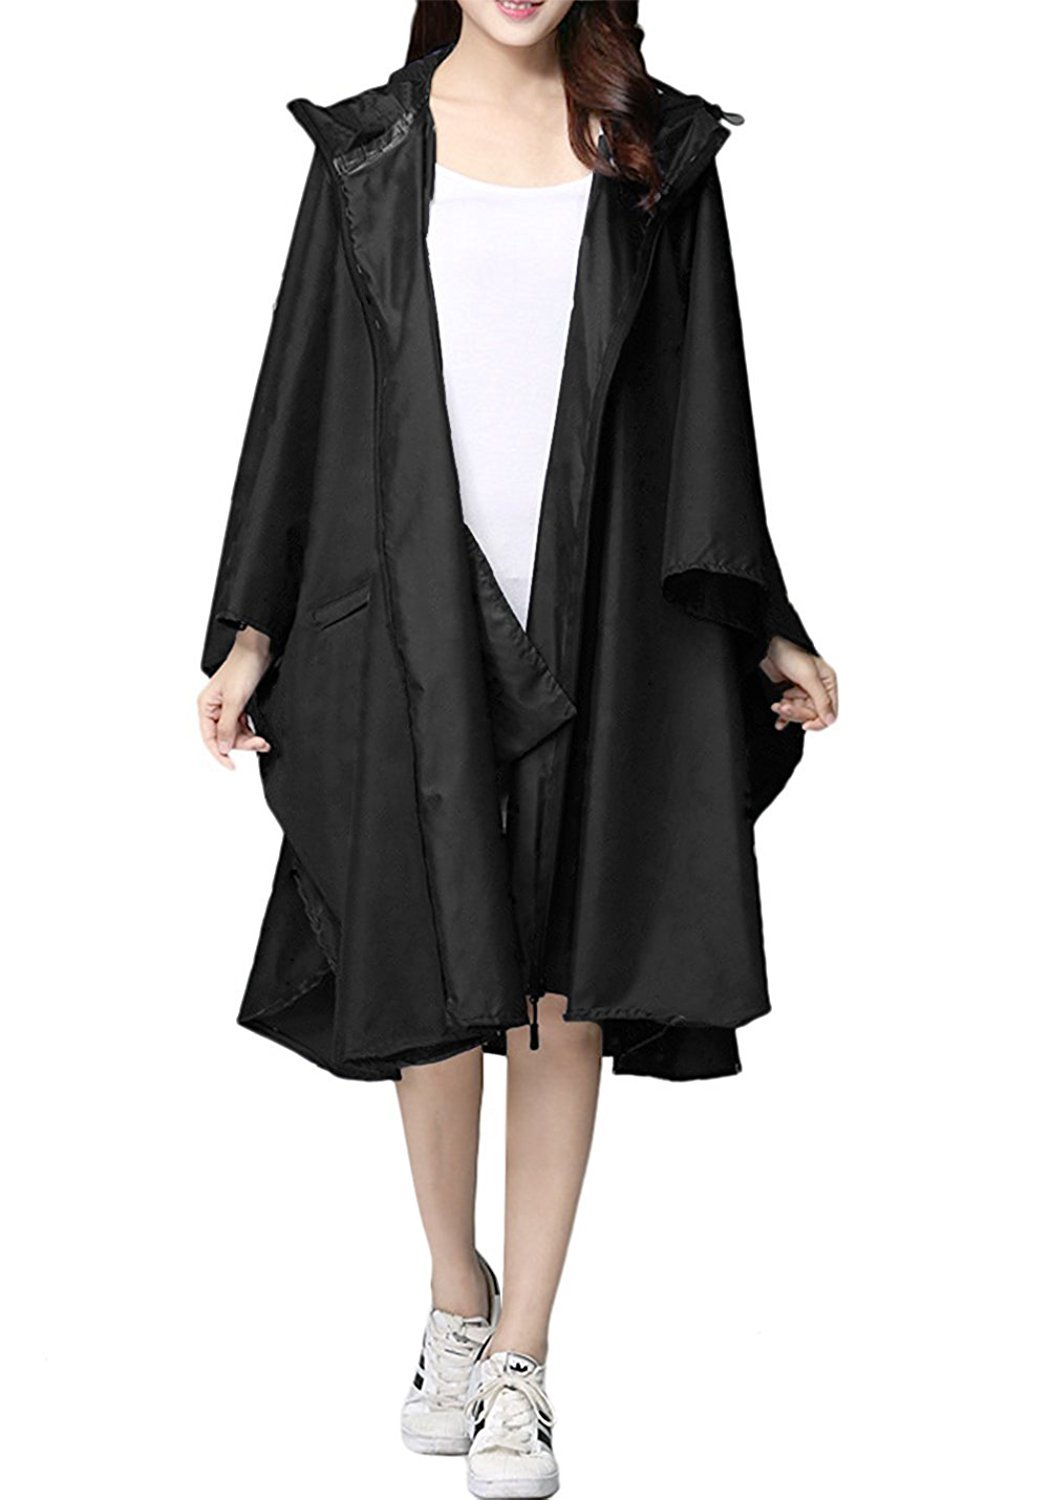 Thomas Home Rain Poncho Packable Rain Jacket Light-Weight Raincoat Hood Trench for Men and Women (Black, L)